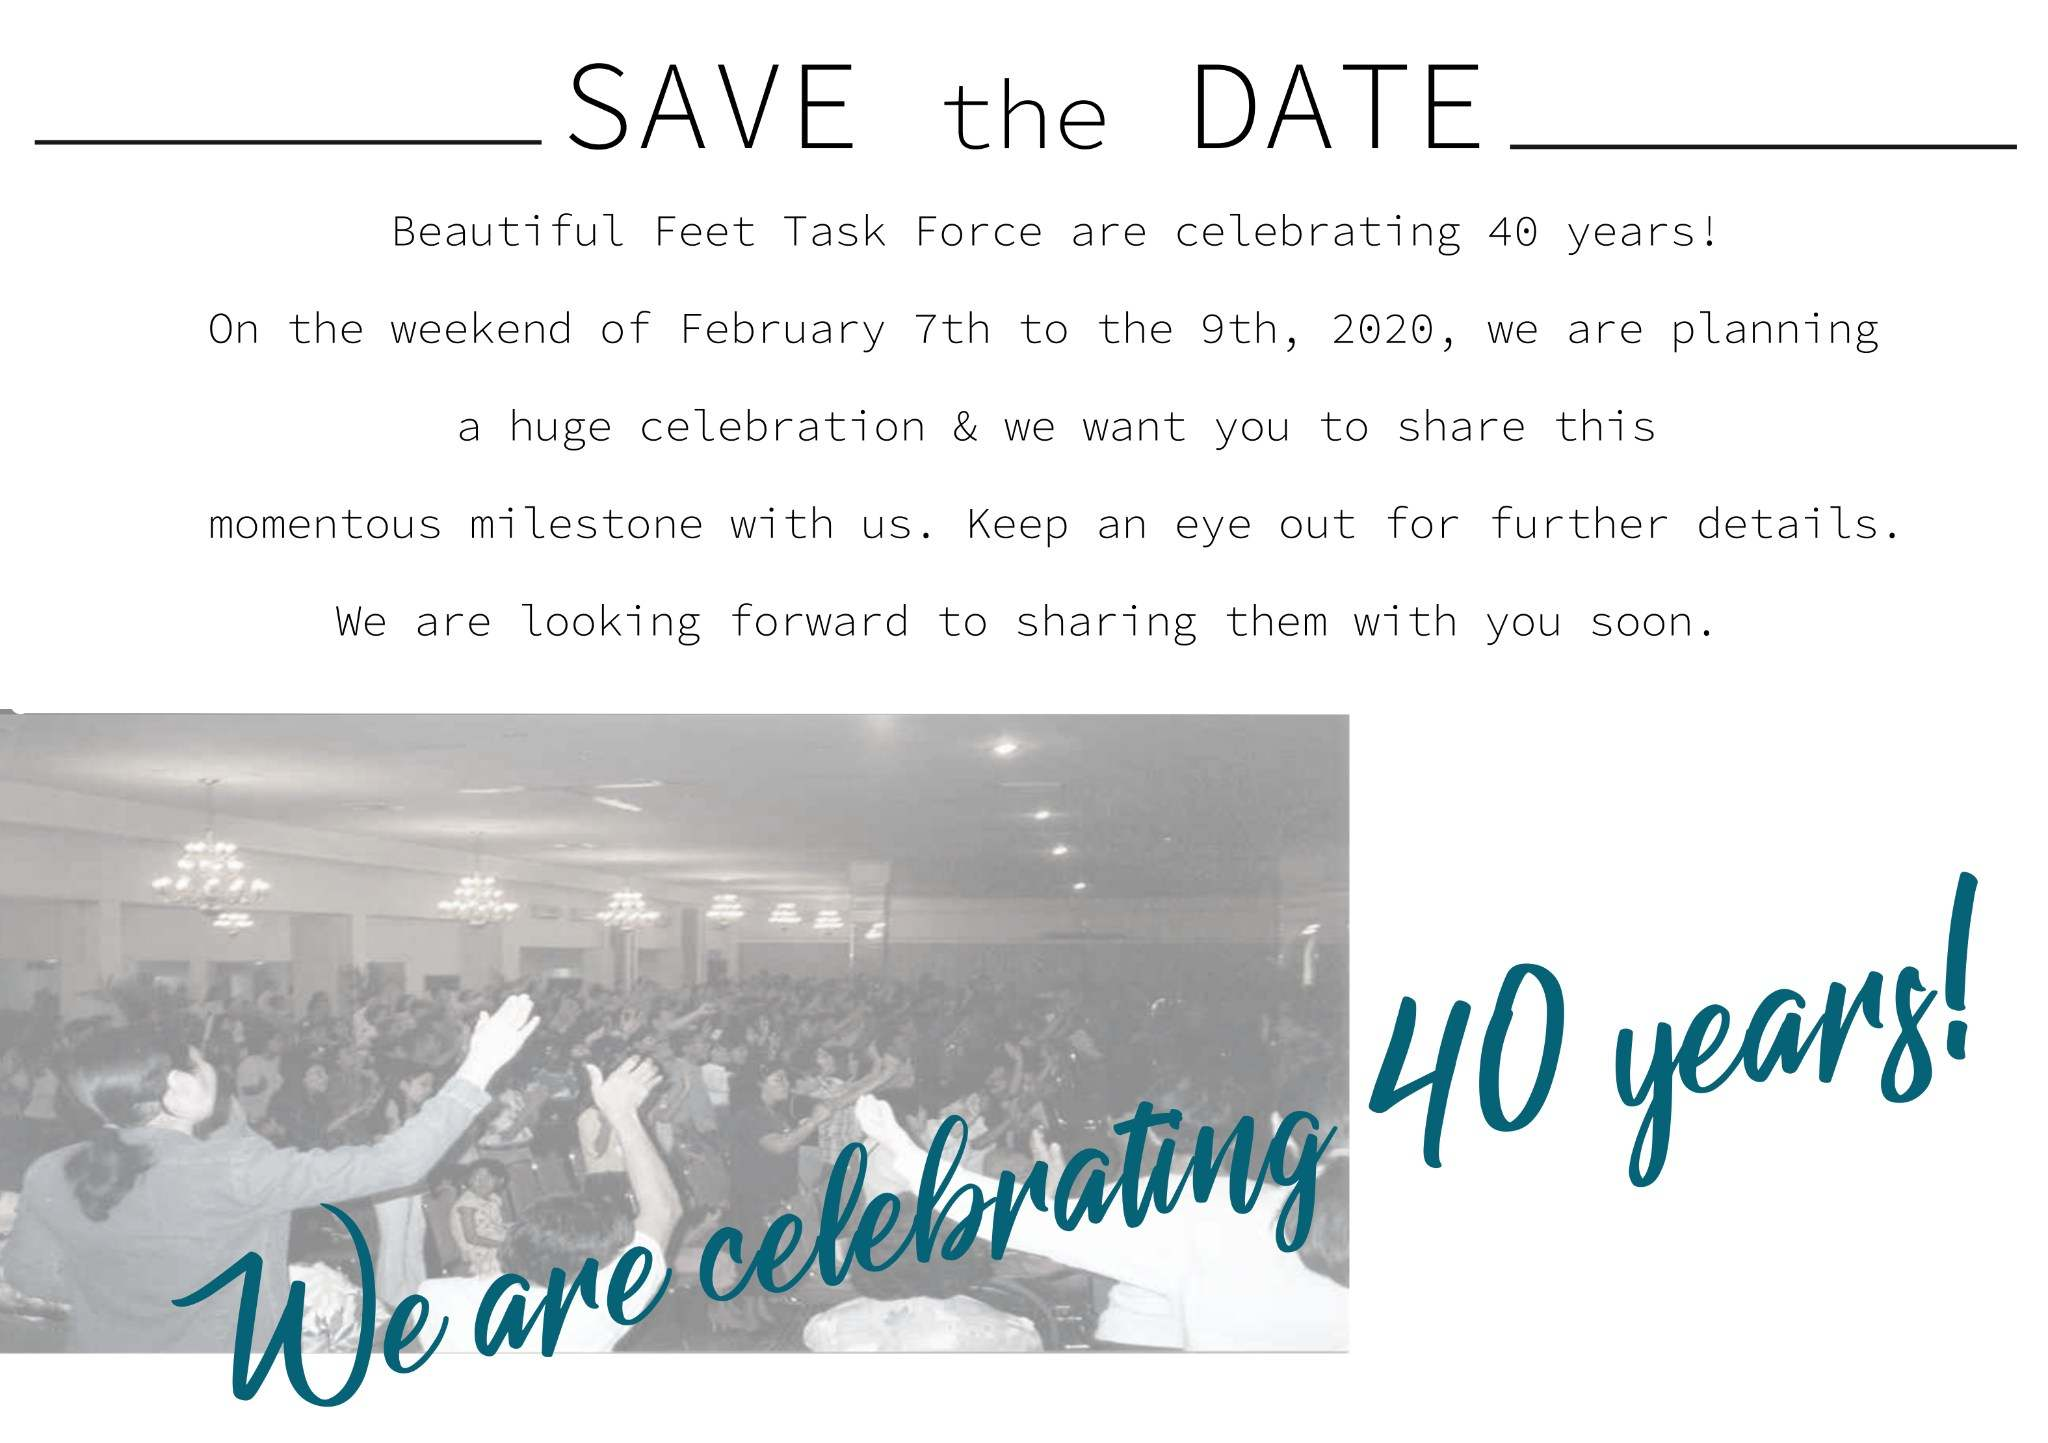 Save the Date, BFTF 40th Anniversary